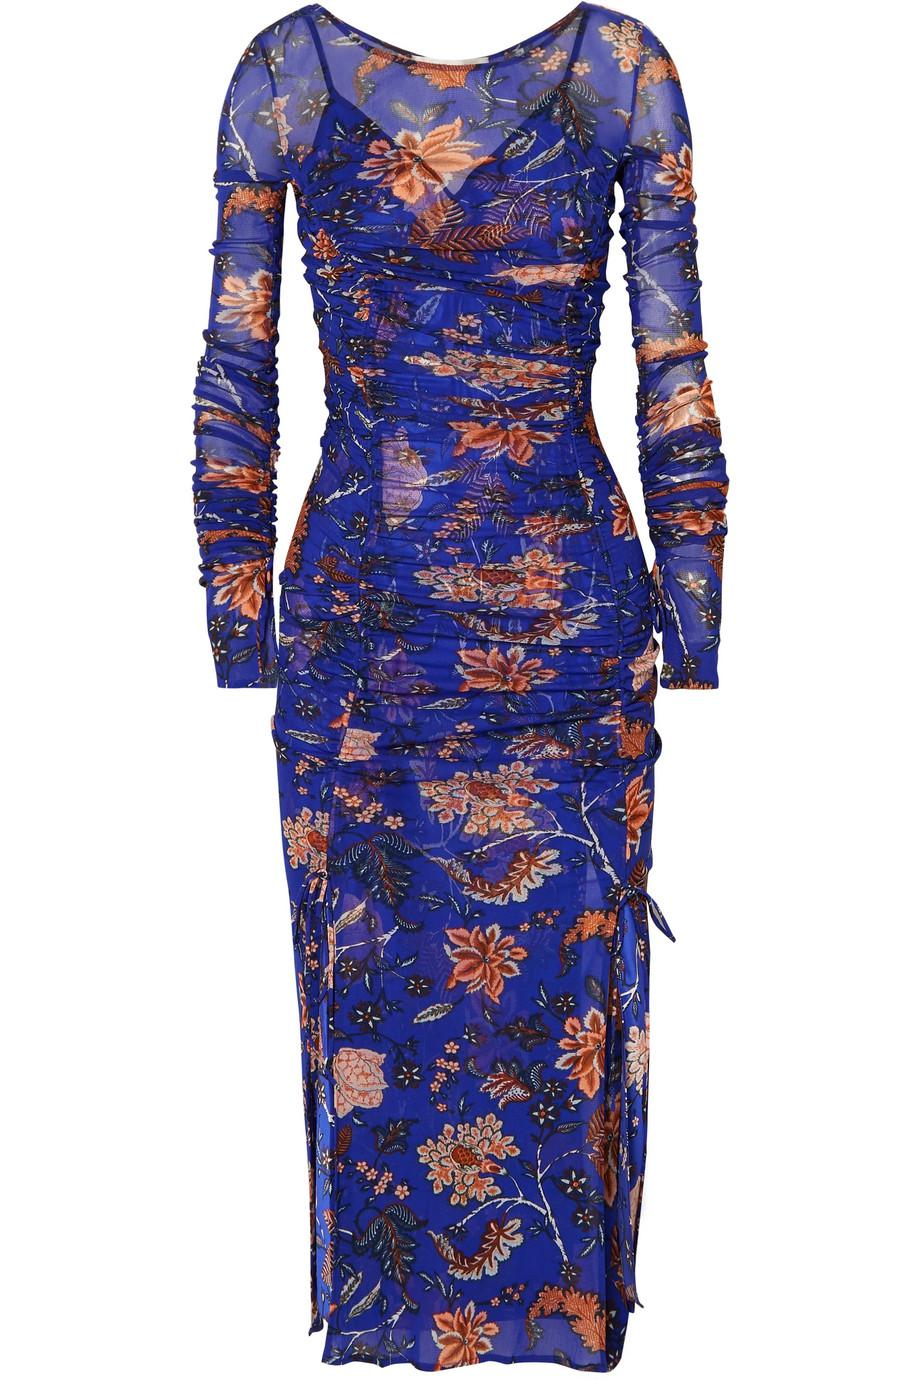 Canton Ruched Floral-print Mesh And Satin Dress - Indigo Diane Von F Clearance Footlocker Finishline Cheap Discount Sale Buy Cheap Pre Order Outlet View Fashionable 0Pcr8j4